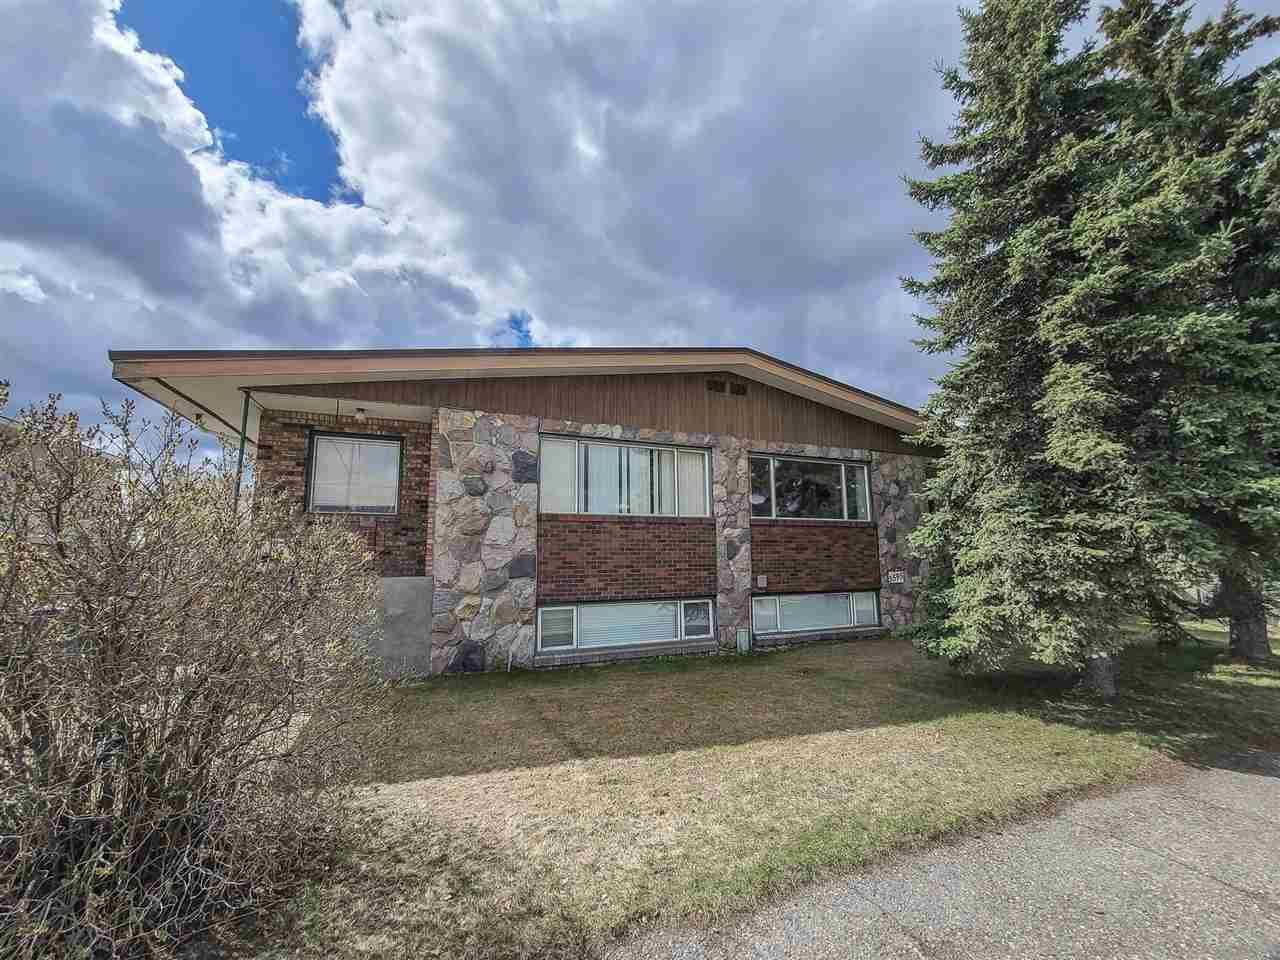 Main Photo: 3593 - 3595 5TH Avenue in Prince George: Spruceland Duplex for sale (PG City West (Zone 71))  : MLS®# R2575918